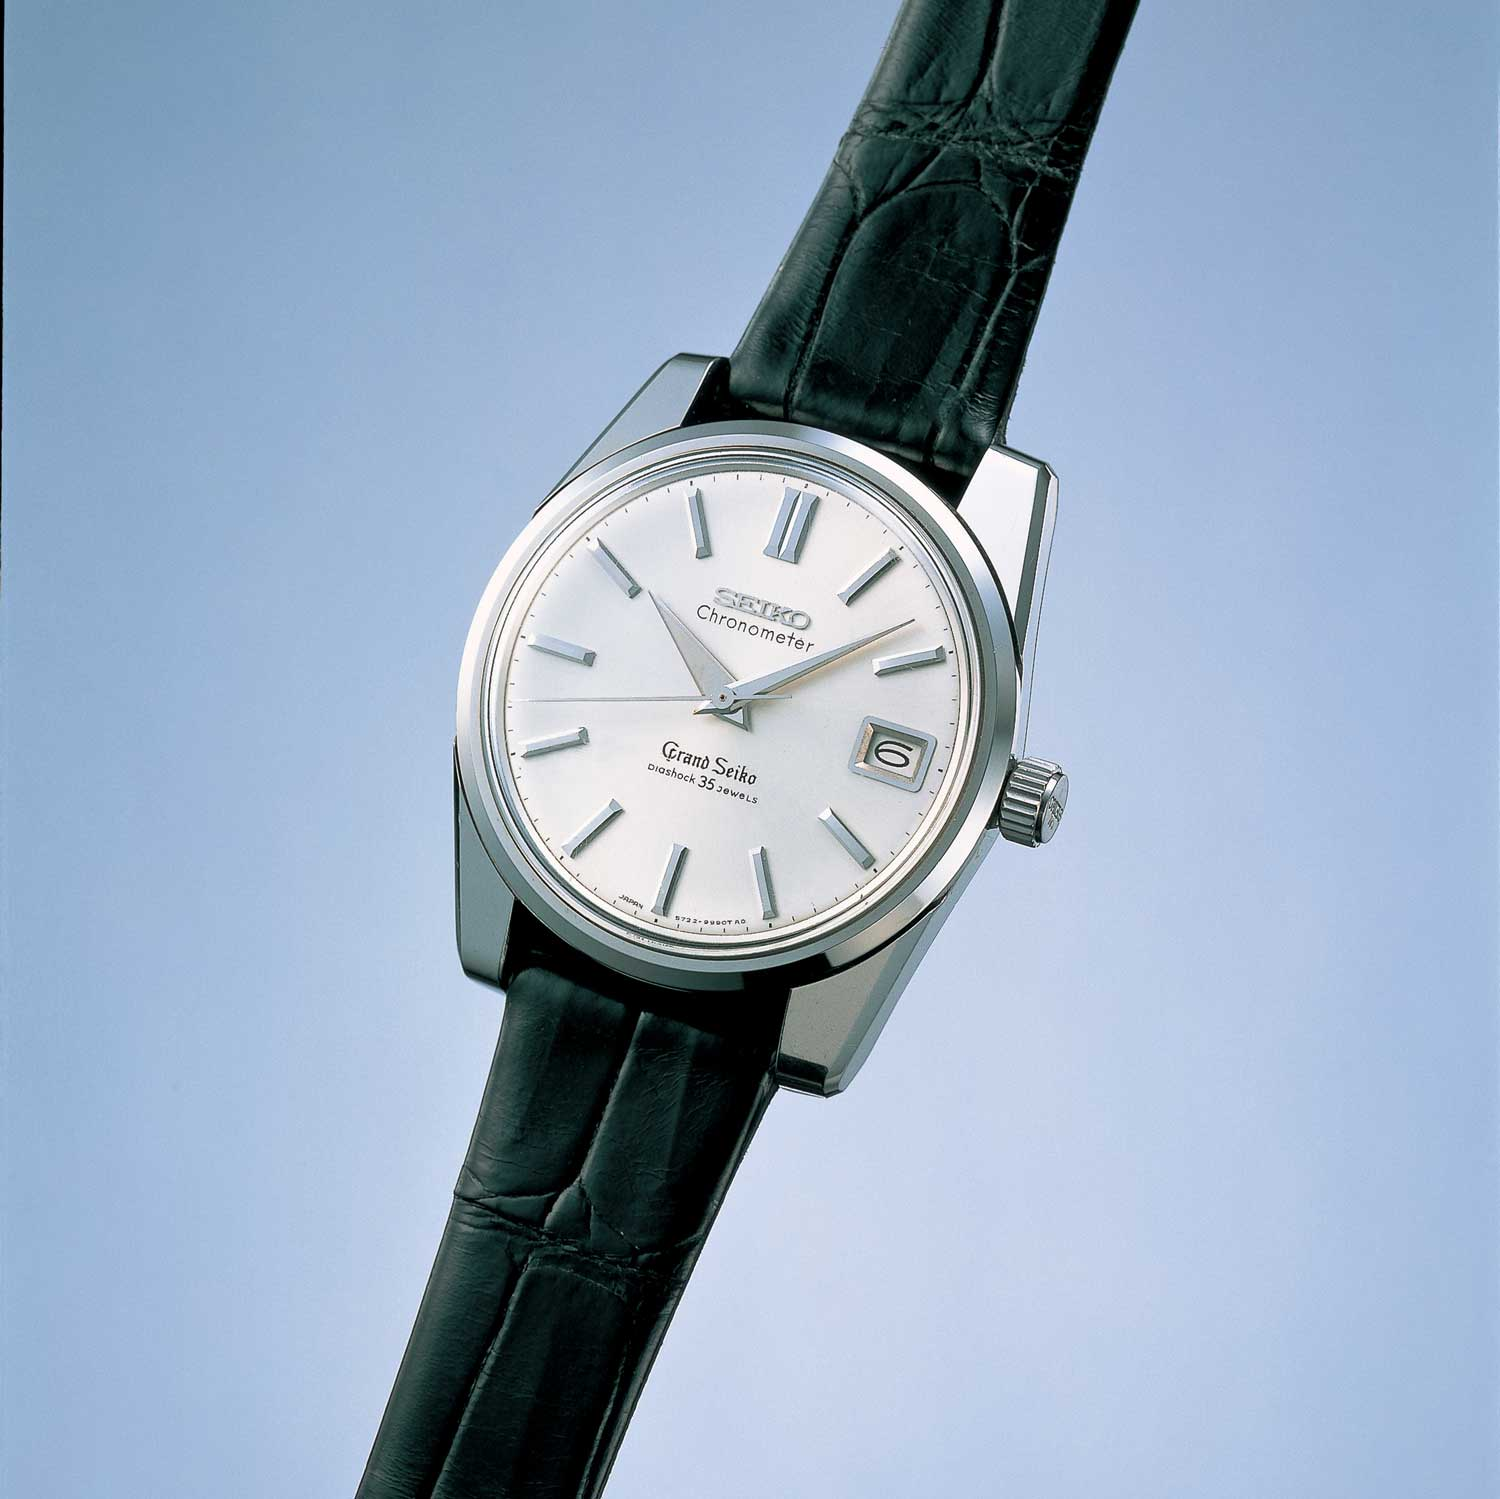 The 57GS commenced production in August 1963 with public launch in February 1964; the exact mode pictured here is a 57GS first featured in the 1966 Seiko catalog (Image: Grand Seiko)